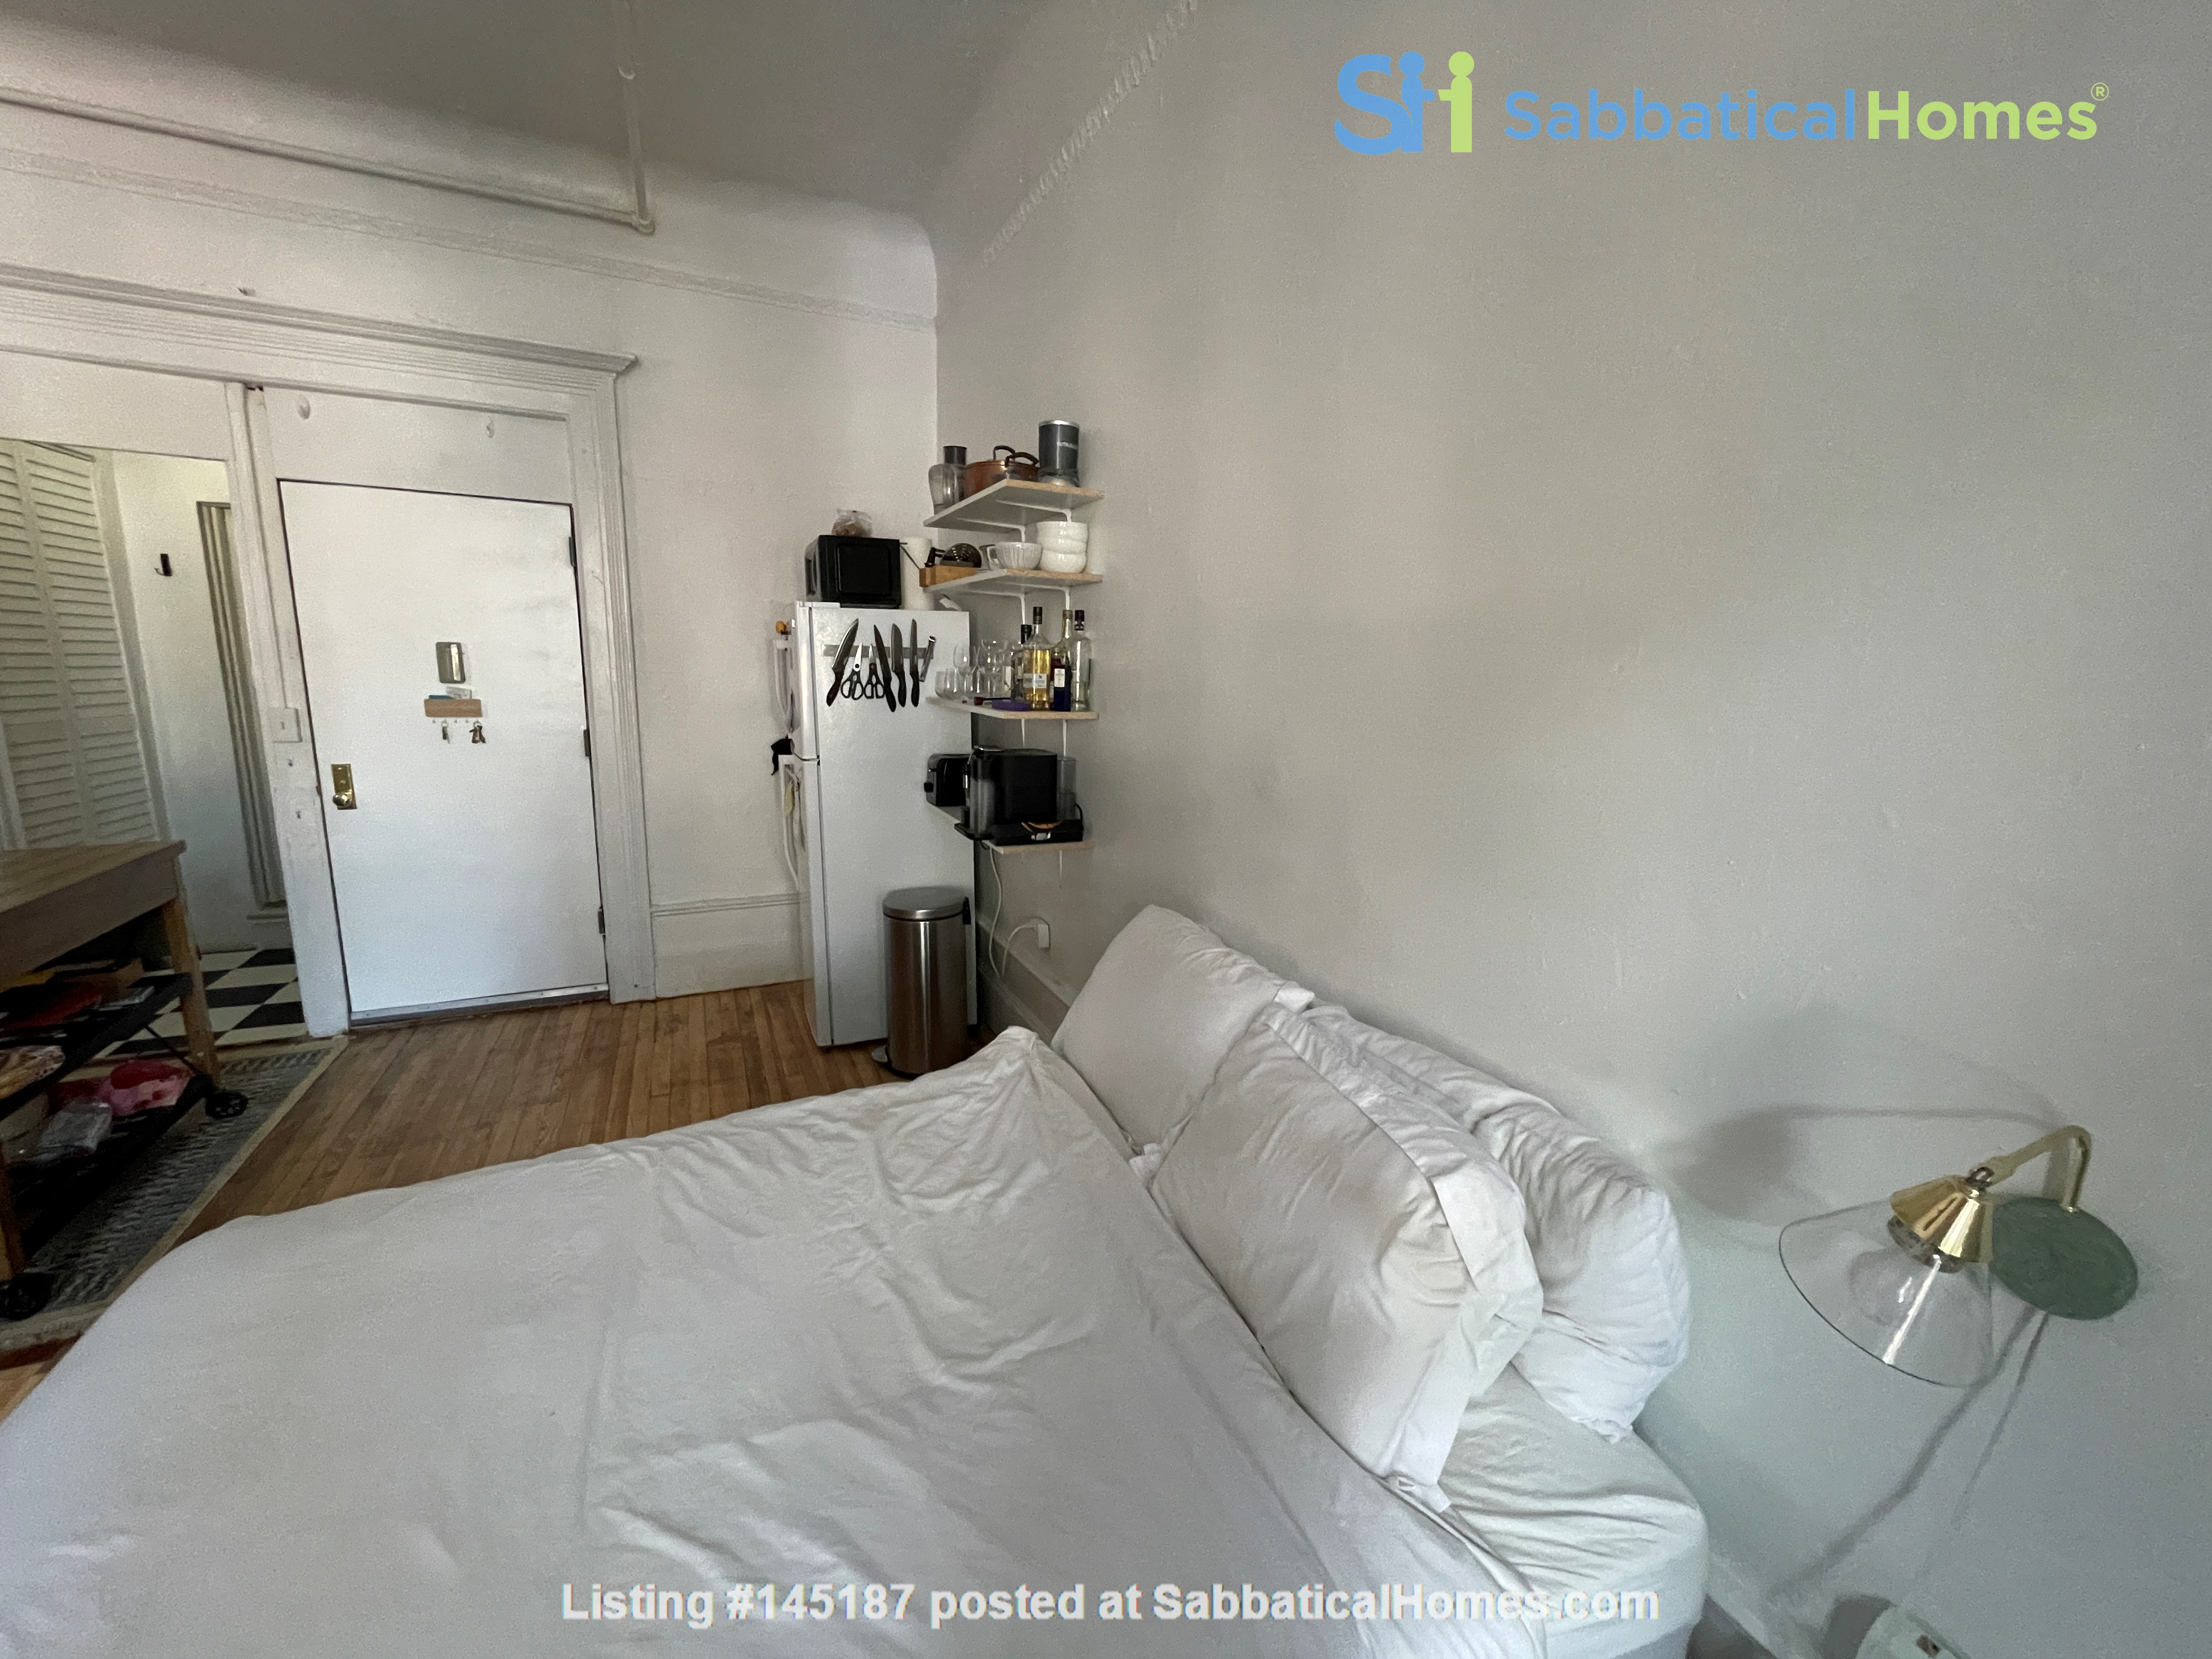 Historic South Harlem Studio with Balcony, short walk to Central Park! Home Rental in New York 3